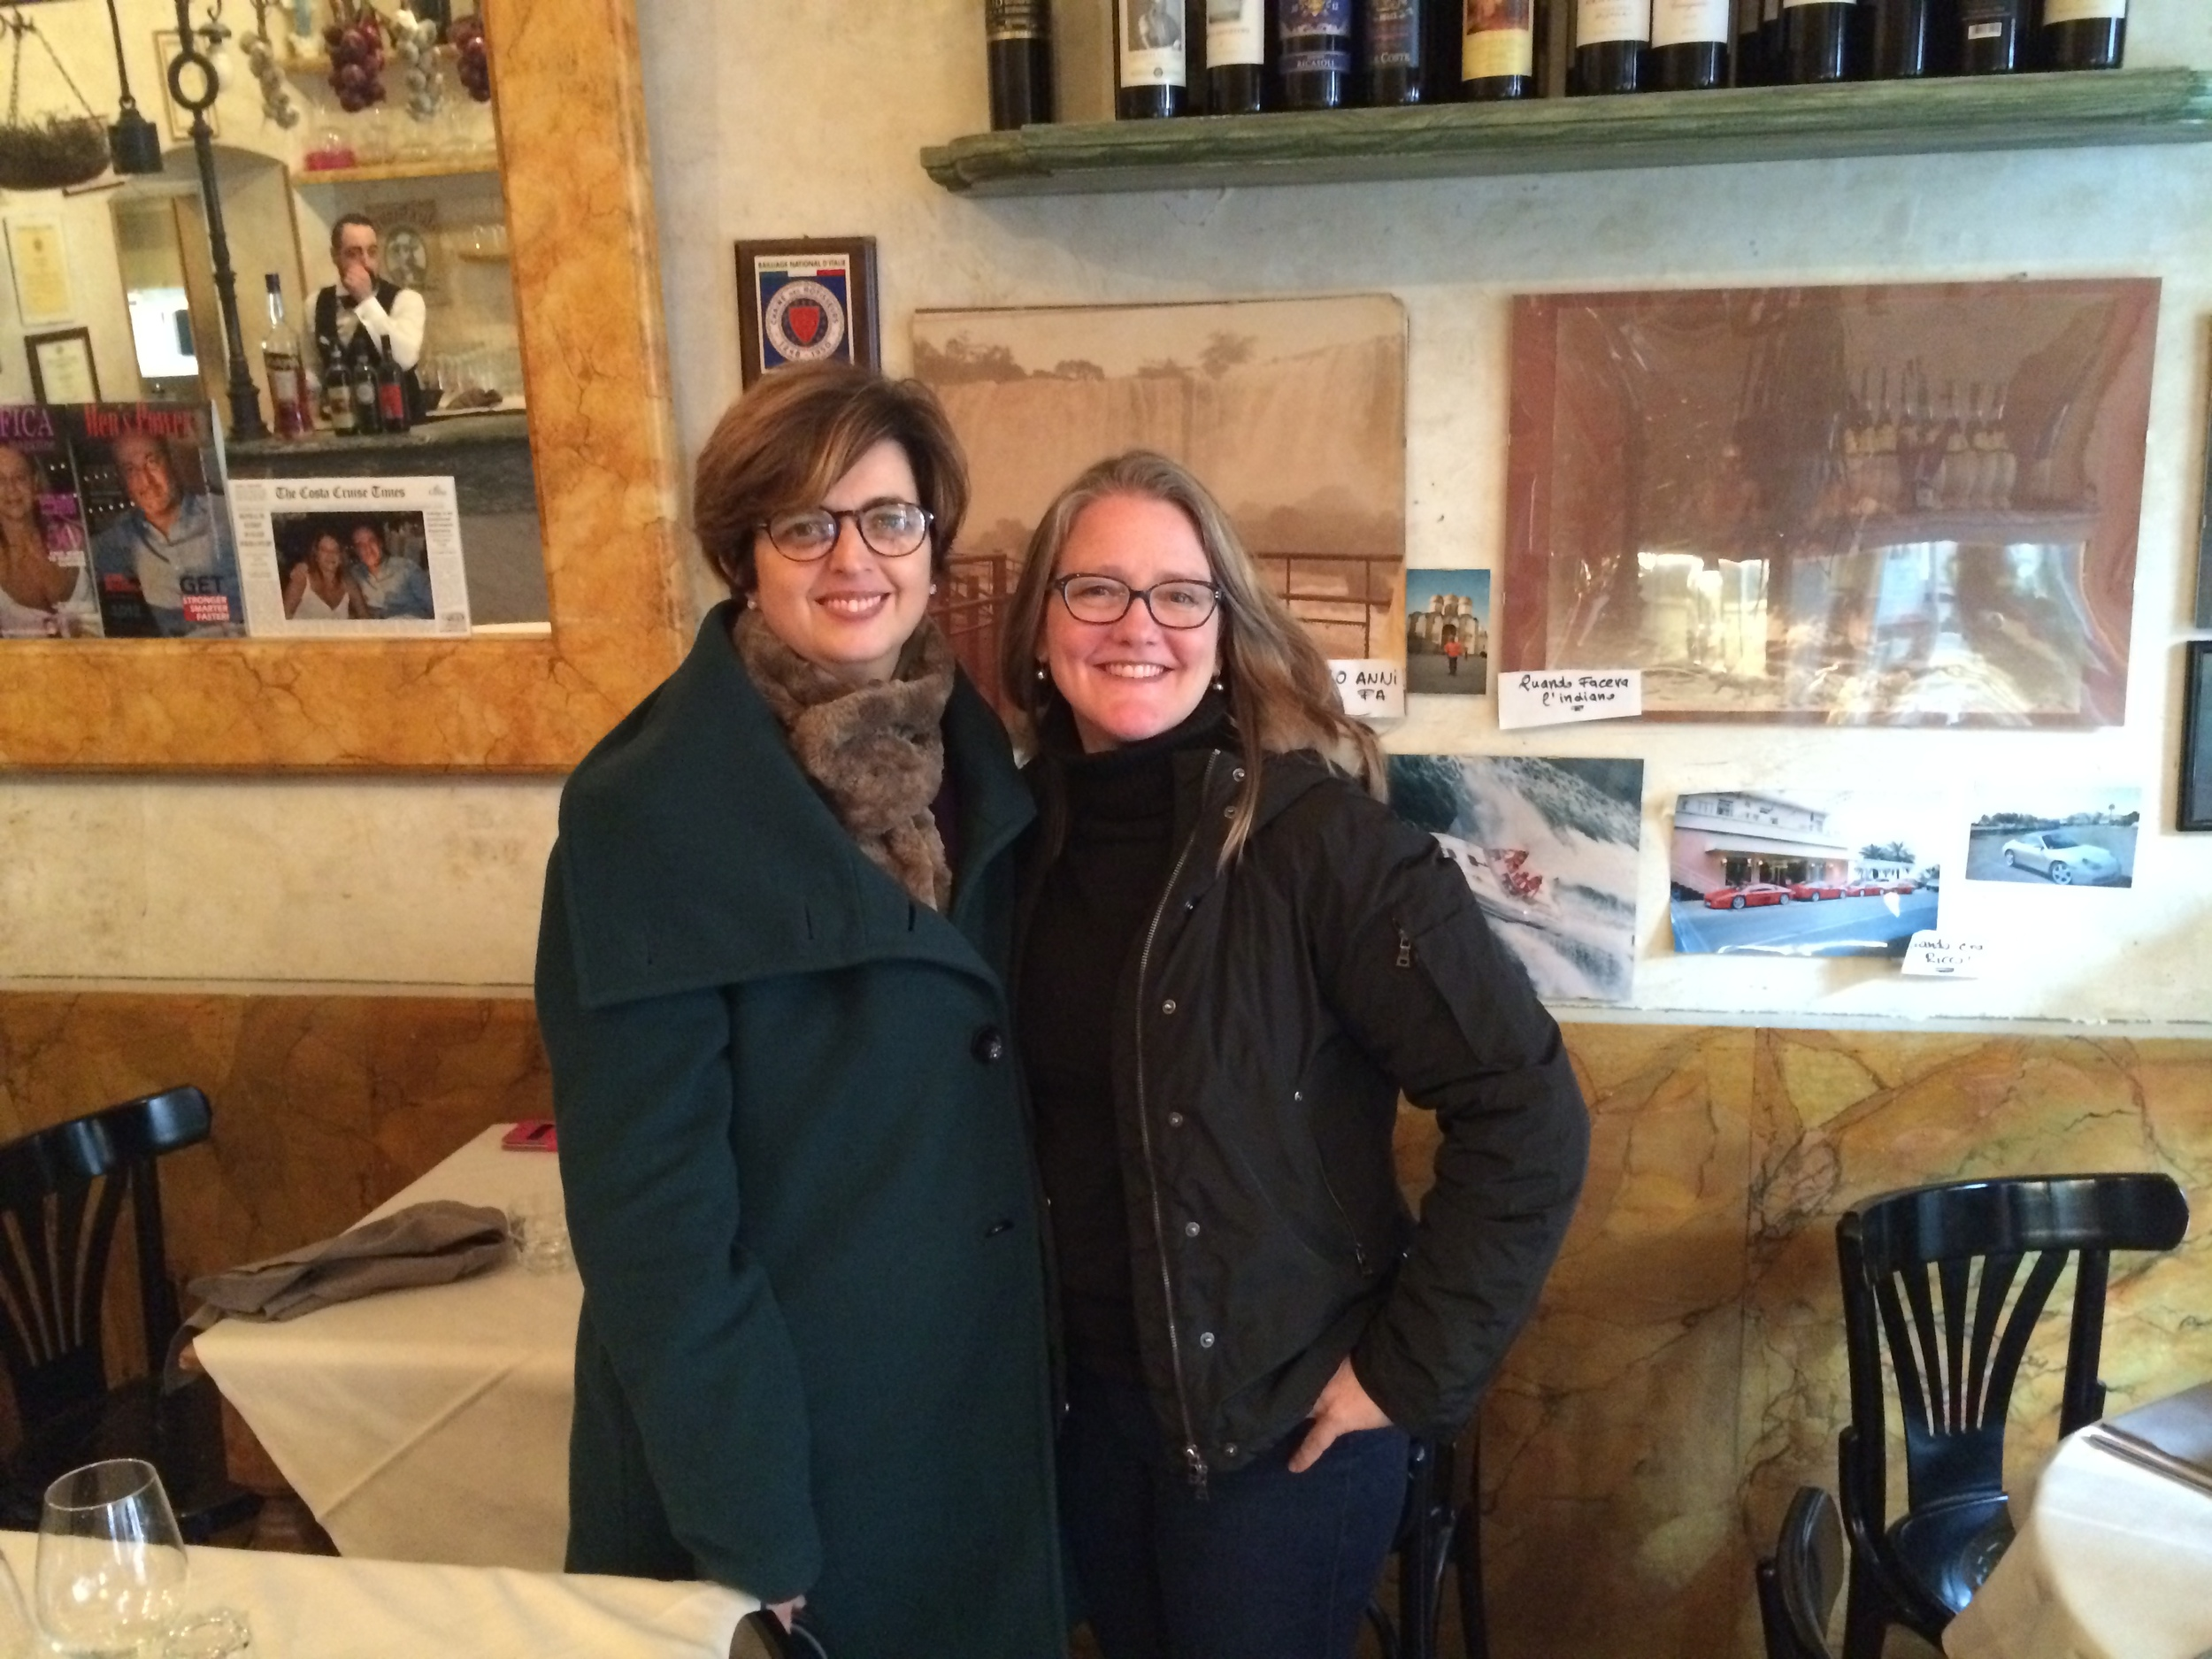 With  Paola Angelini  of   Guided Florence Tours  , who expertly guided me to all Michelangelo's hiding places, and who I hope will create her own Time Traveler Tour one day. Her topic: Renaissance women!